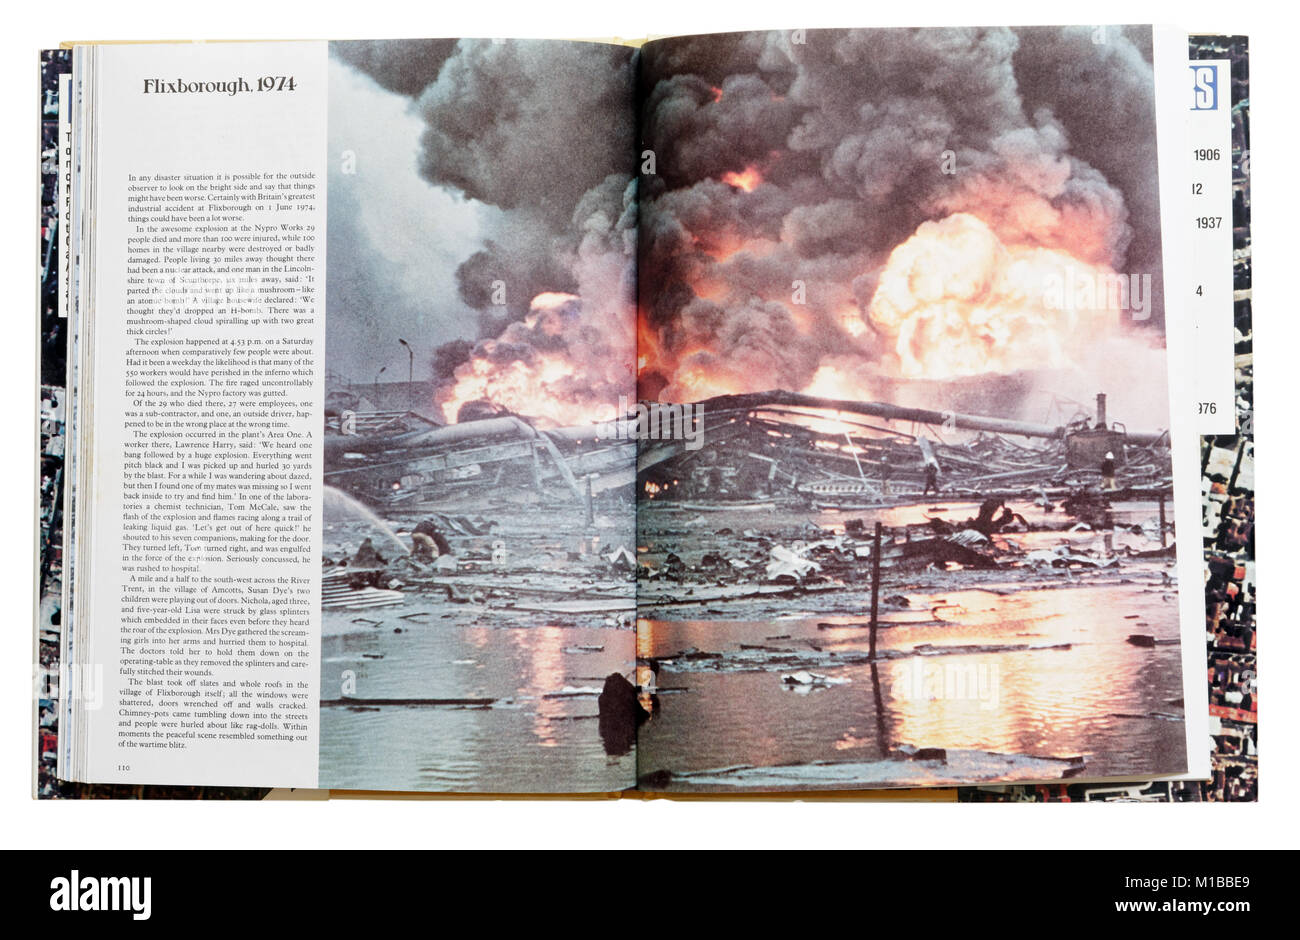 A book of disasters open to the page about the 1974 Flixborough explosion - Stock Image